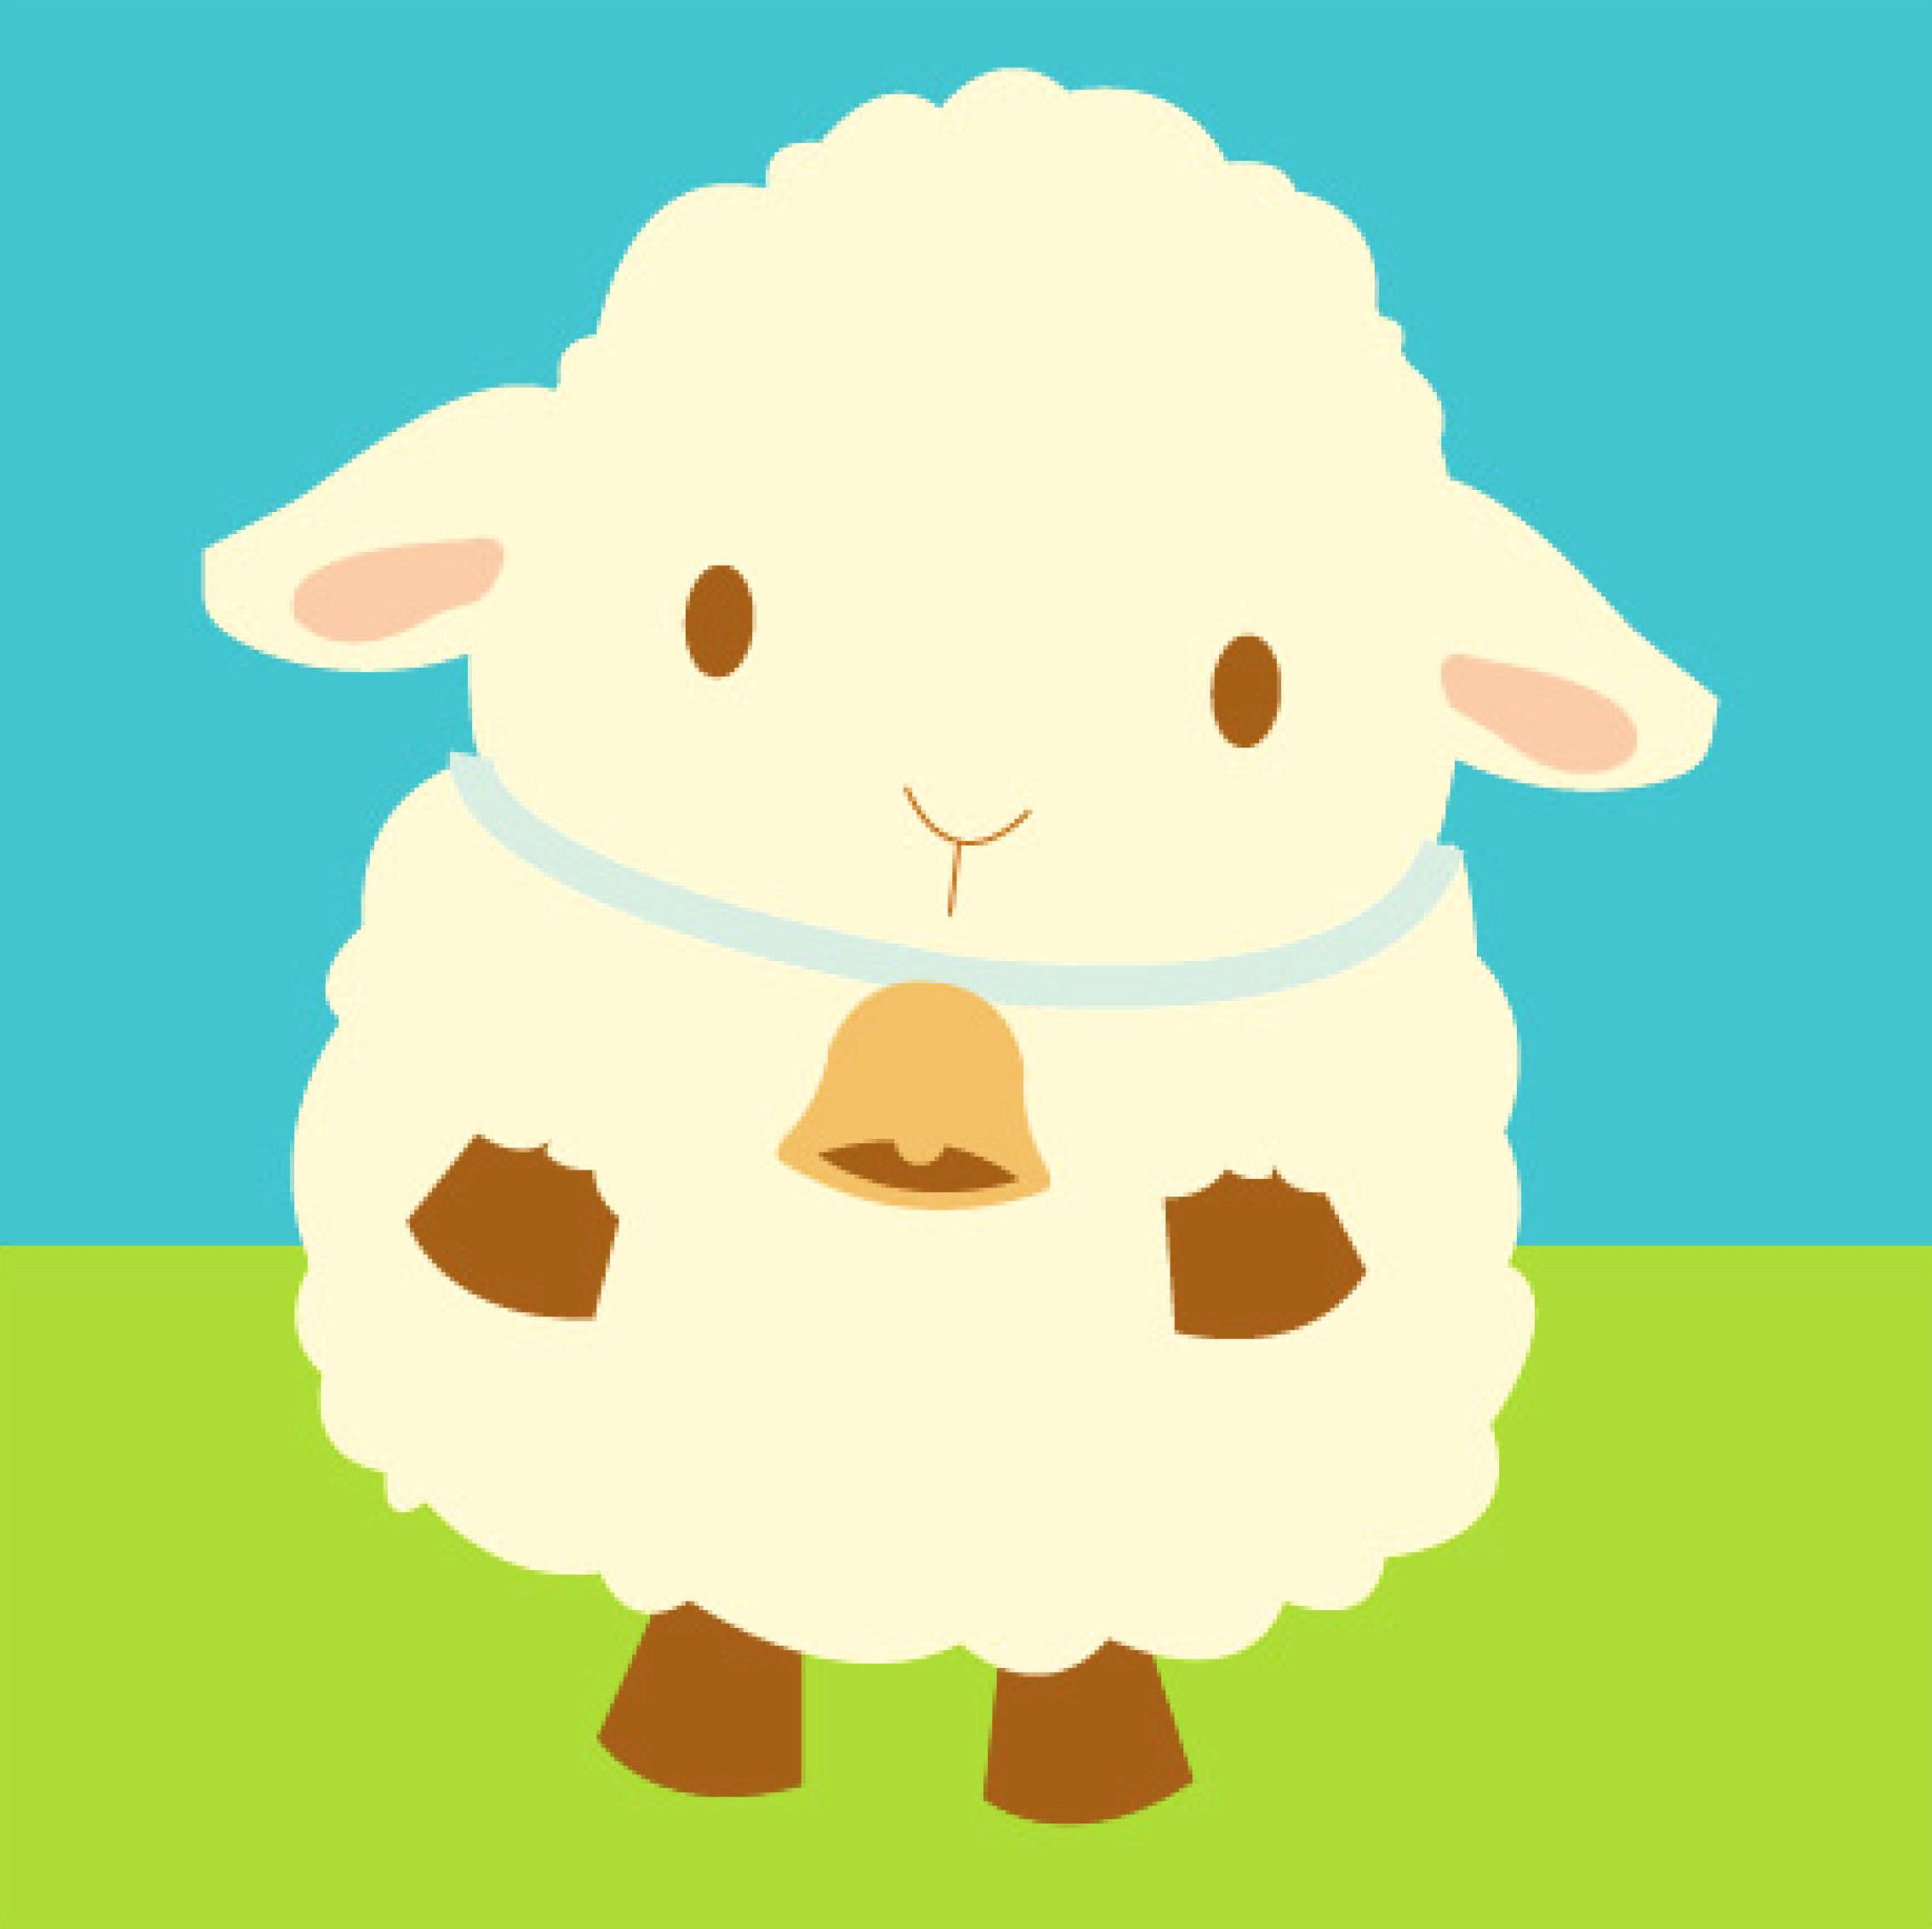 Lamb clipart baptism. Cute sheep fluffy sheepy